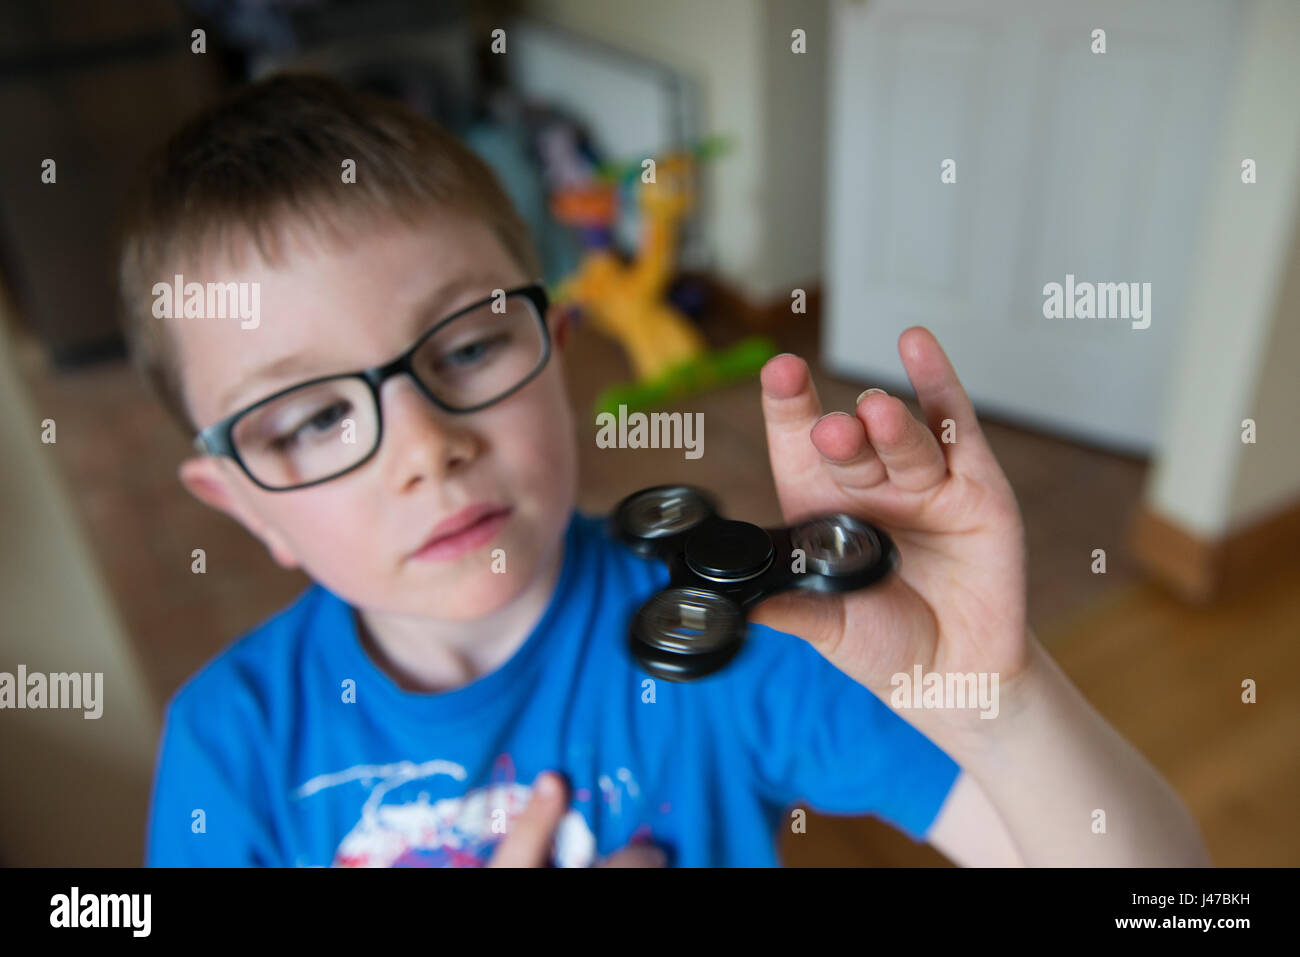 A young boy spins a black fidget spinner on his thumb - Stock Image